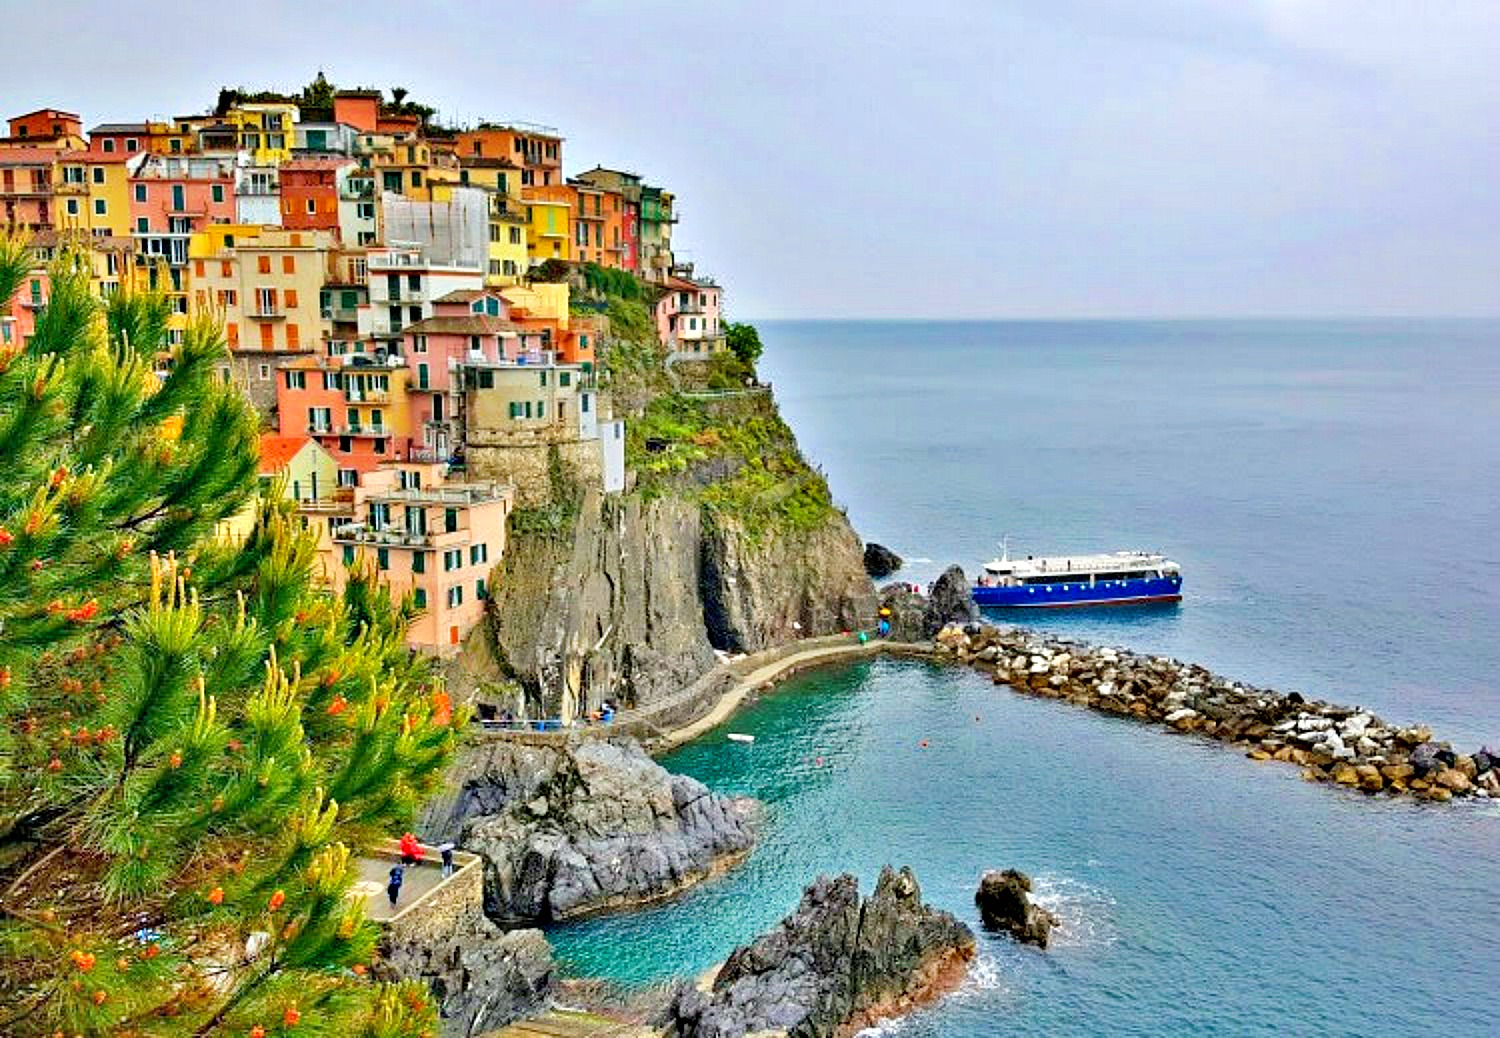 Famous sights in Italy - Cinque Terre.